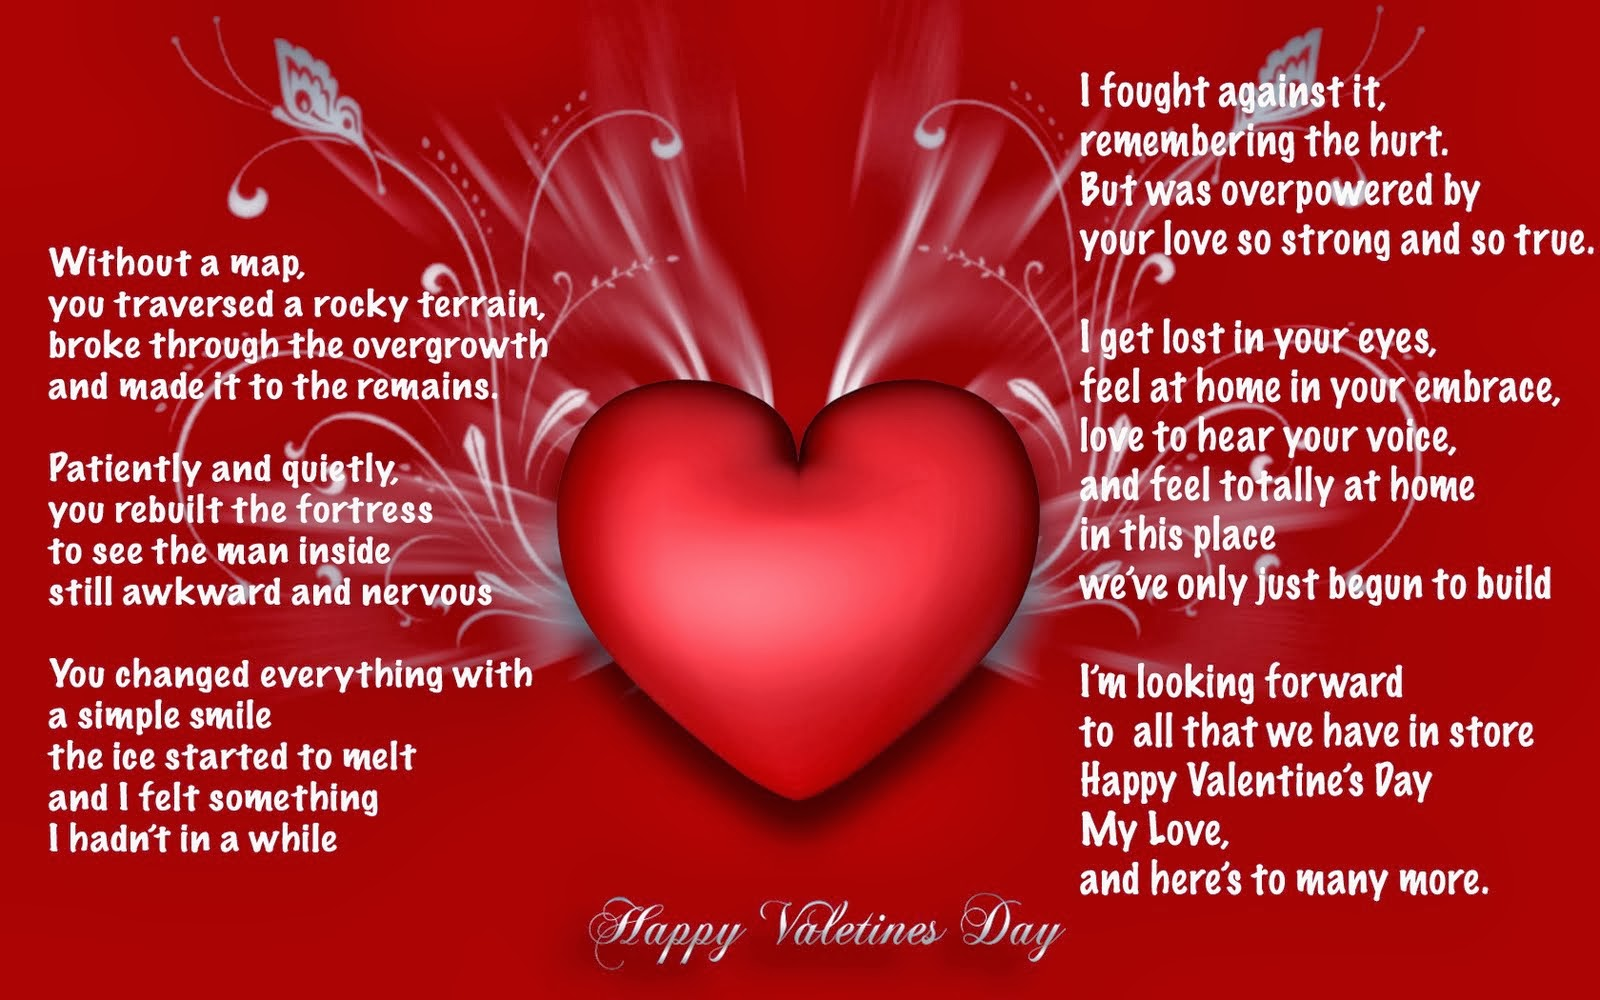 happy valentines day greetings for boyfriend - Happy Valentines Day Wishes